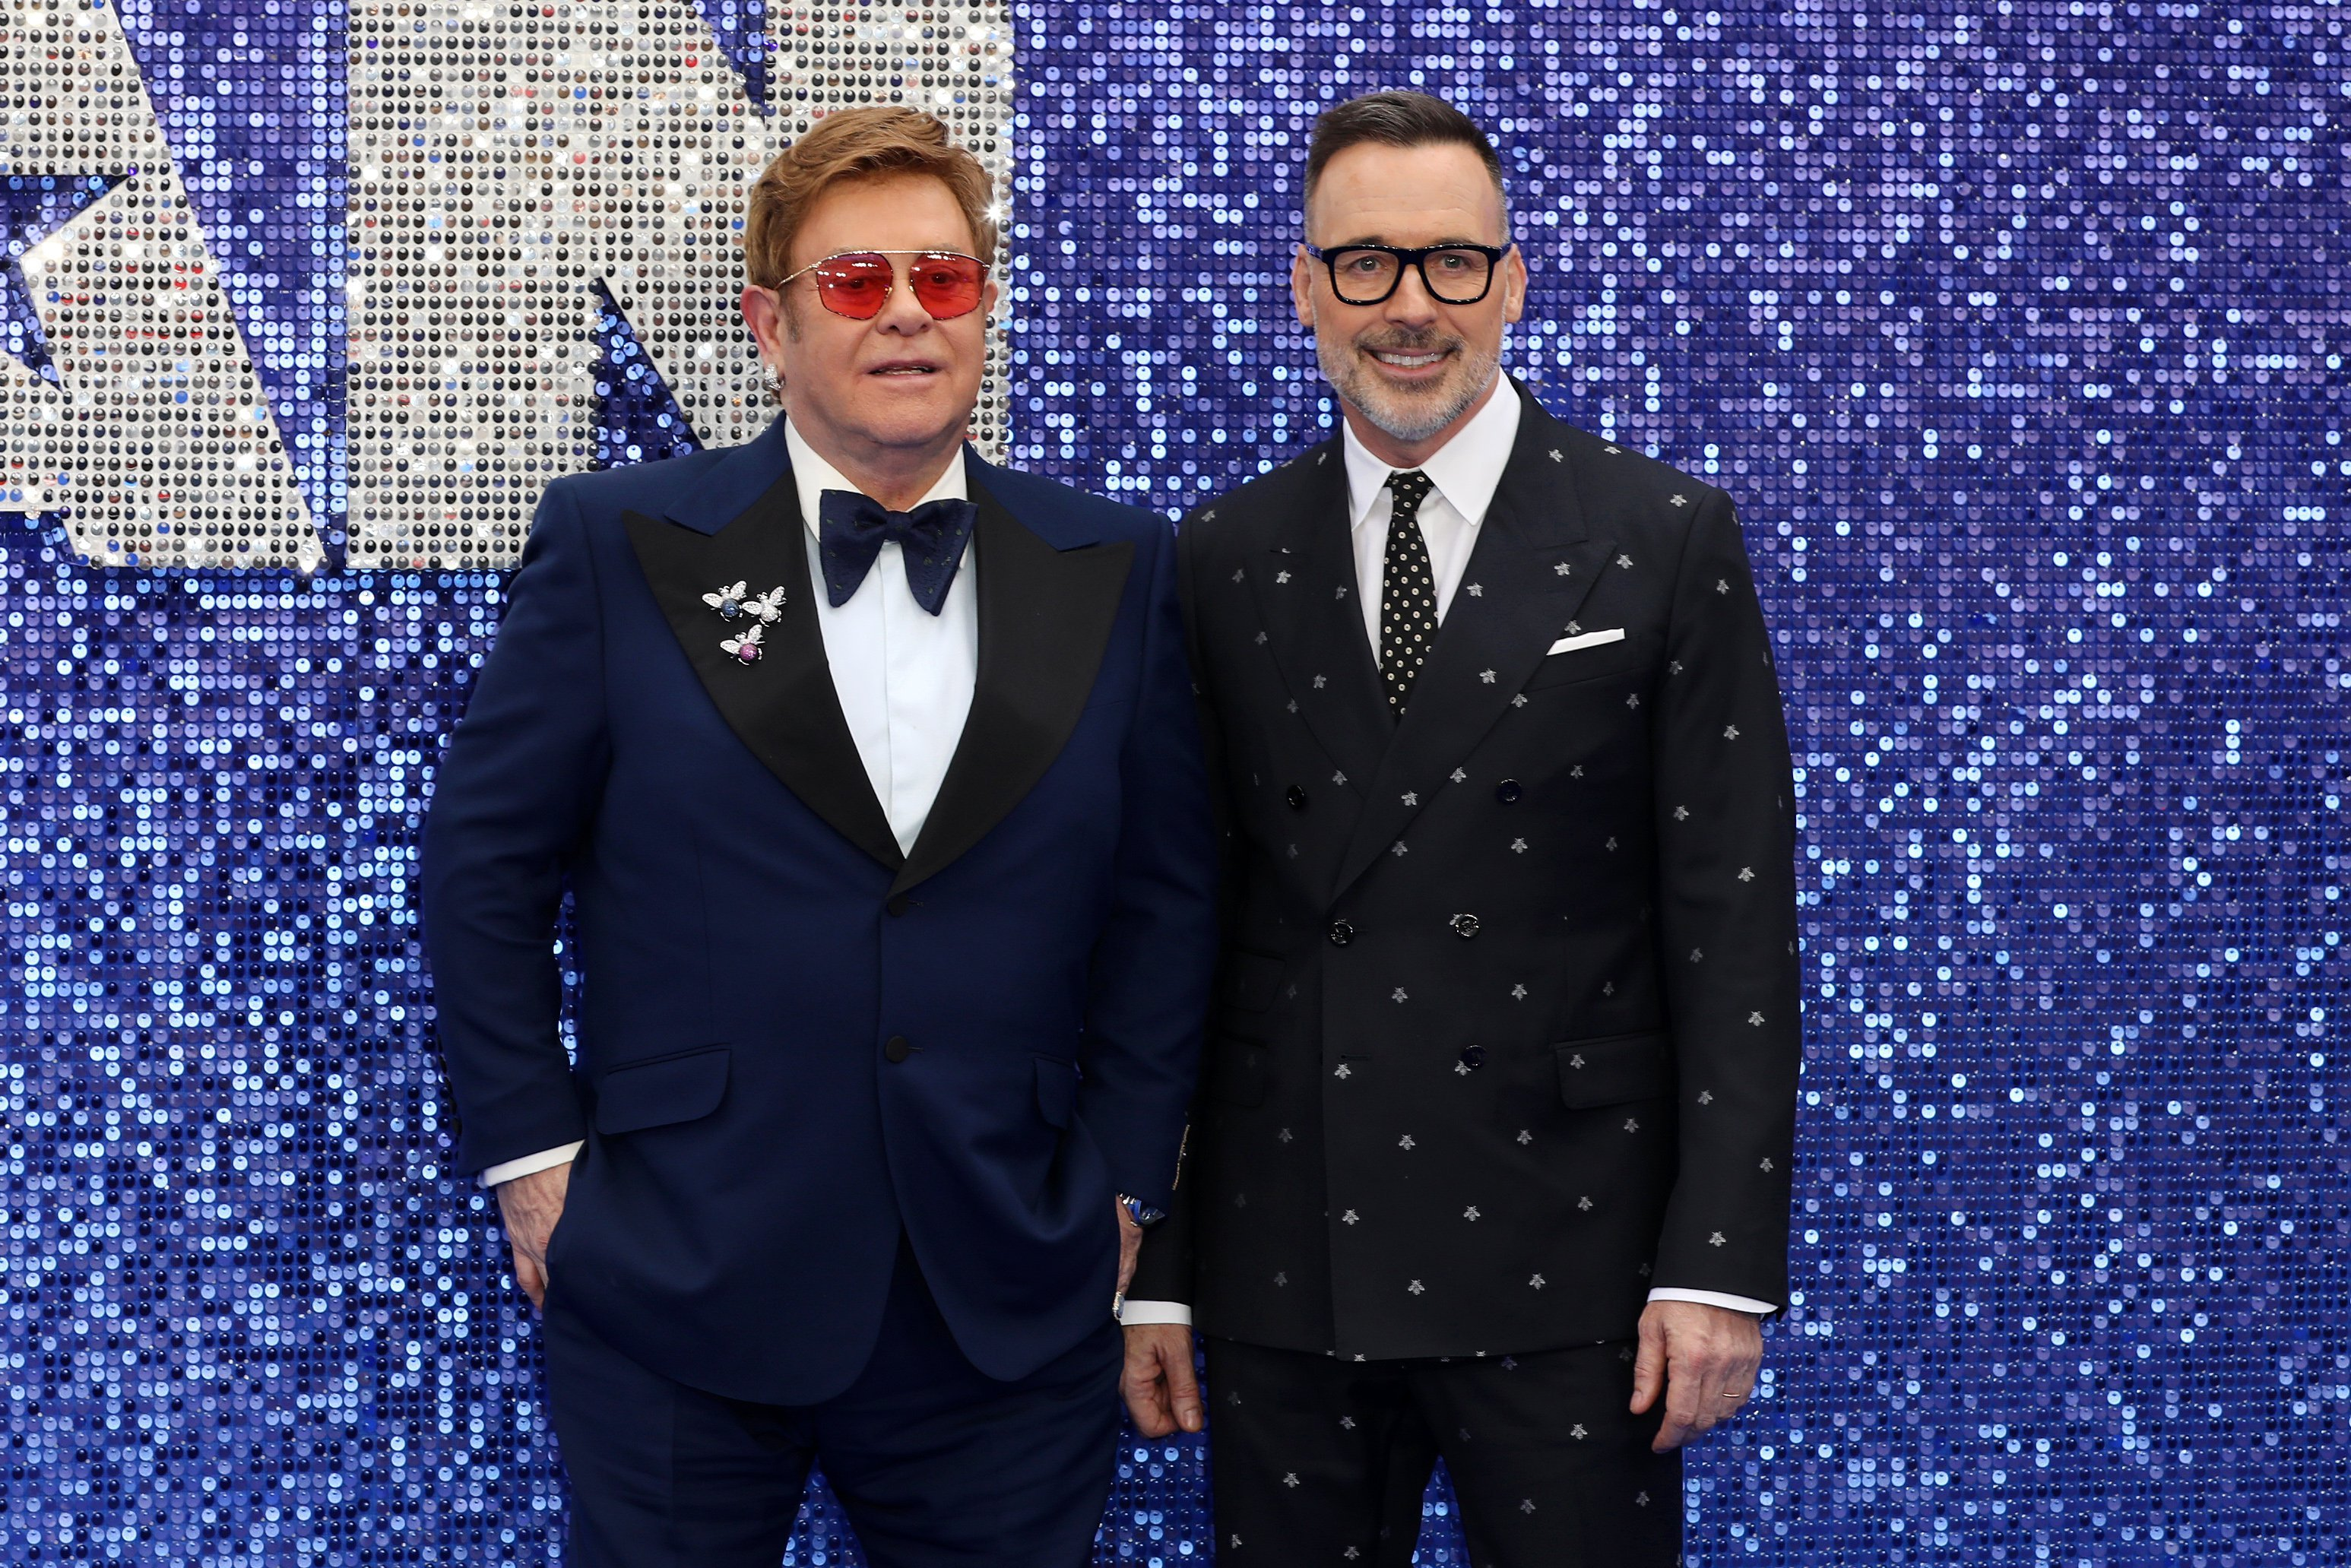 Elton John and David Furnish at the 'Rocketman' UK premiere at Odeon Luxe Leicester Square in London, England | Photo: Getty Images